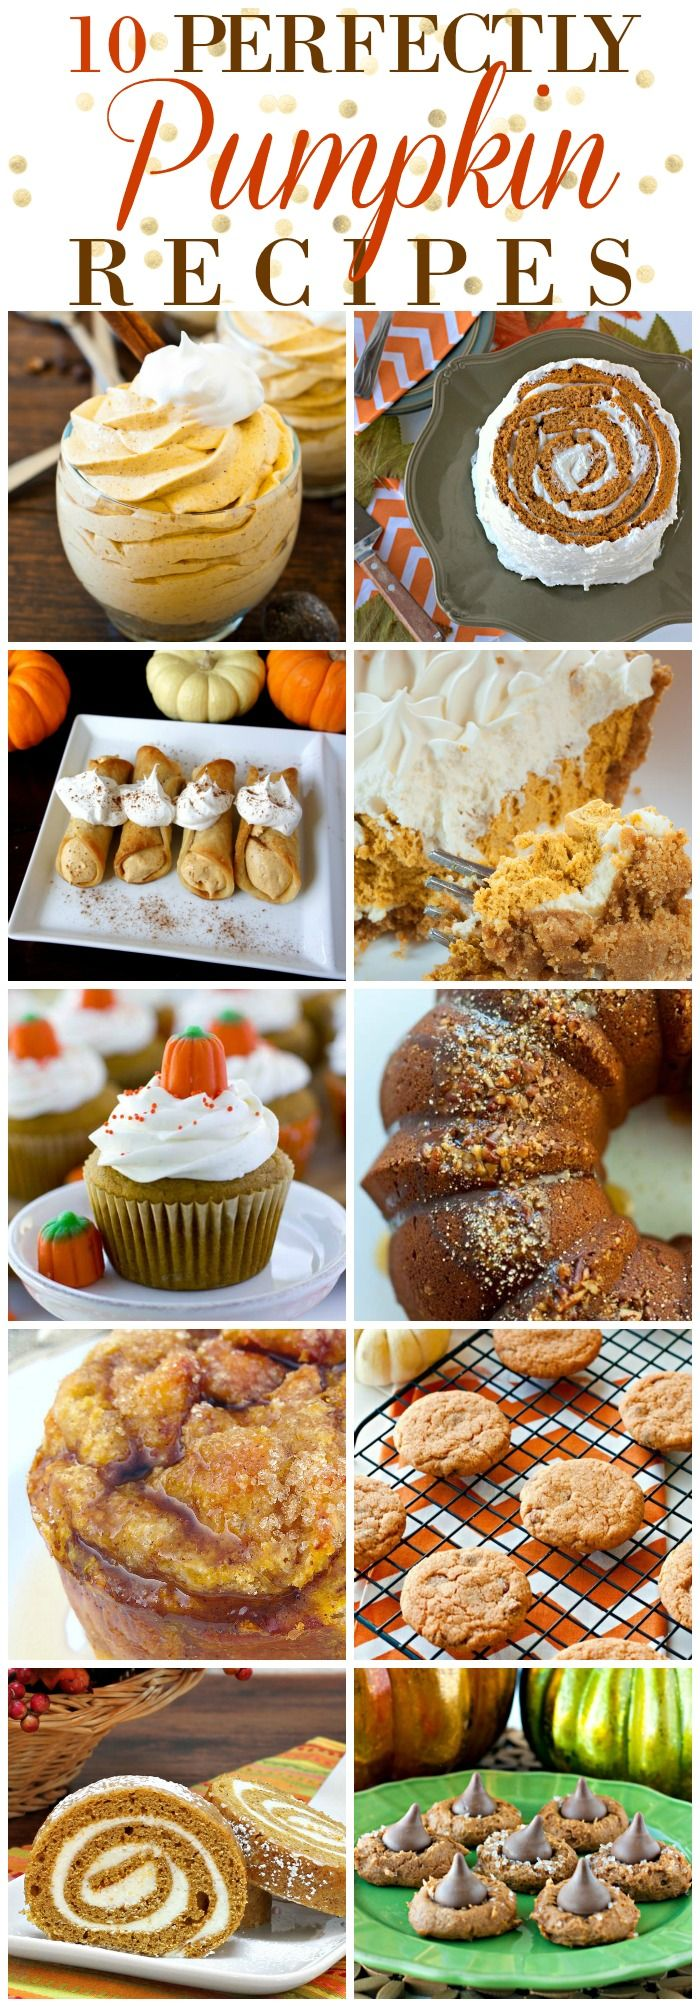 These 10 Perfectly Pumpkin Desserts would be great…